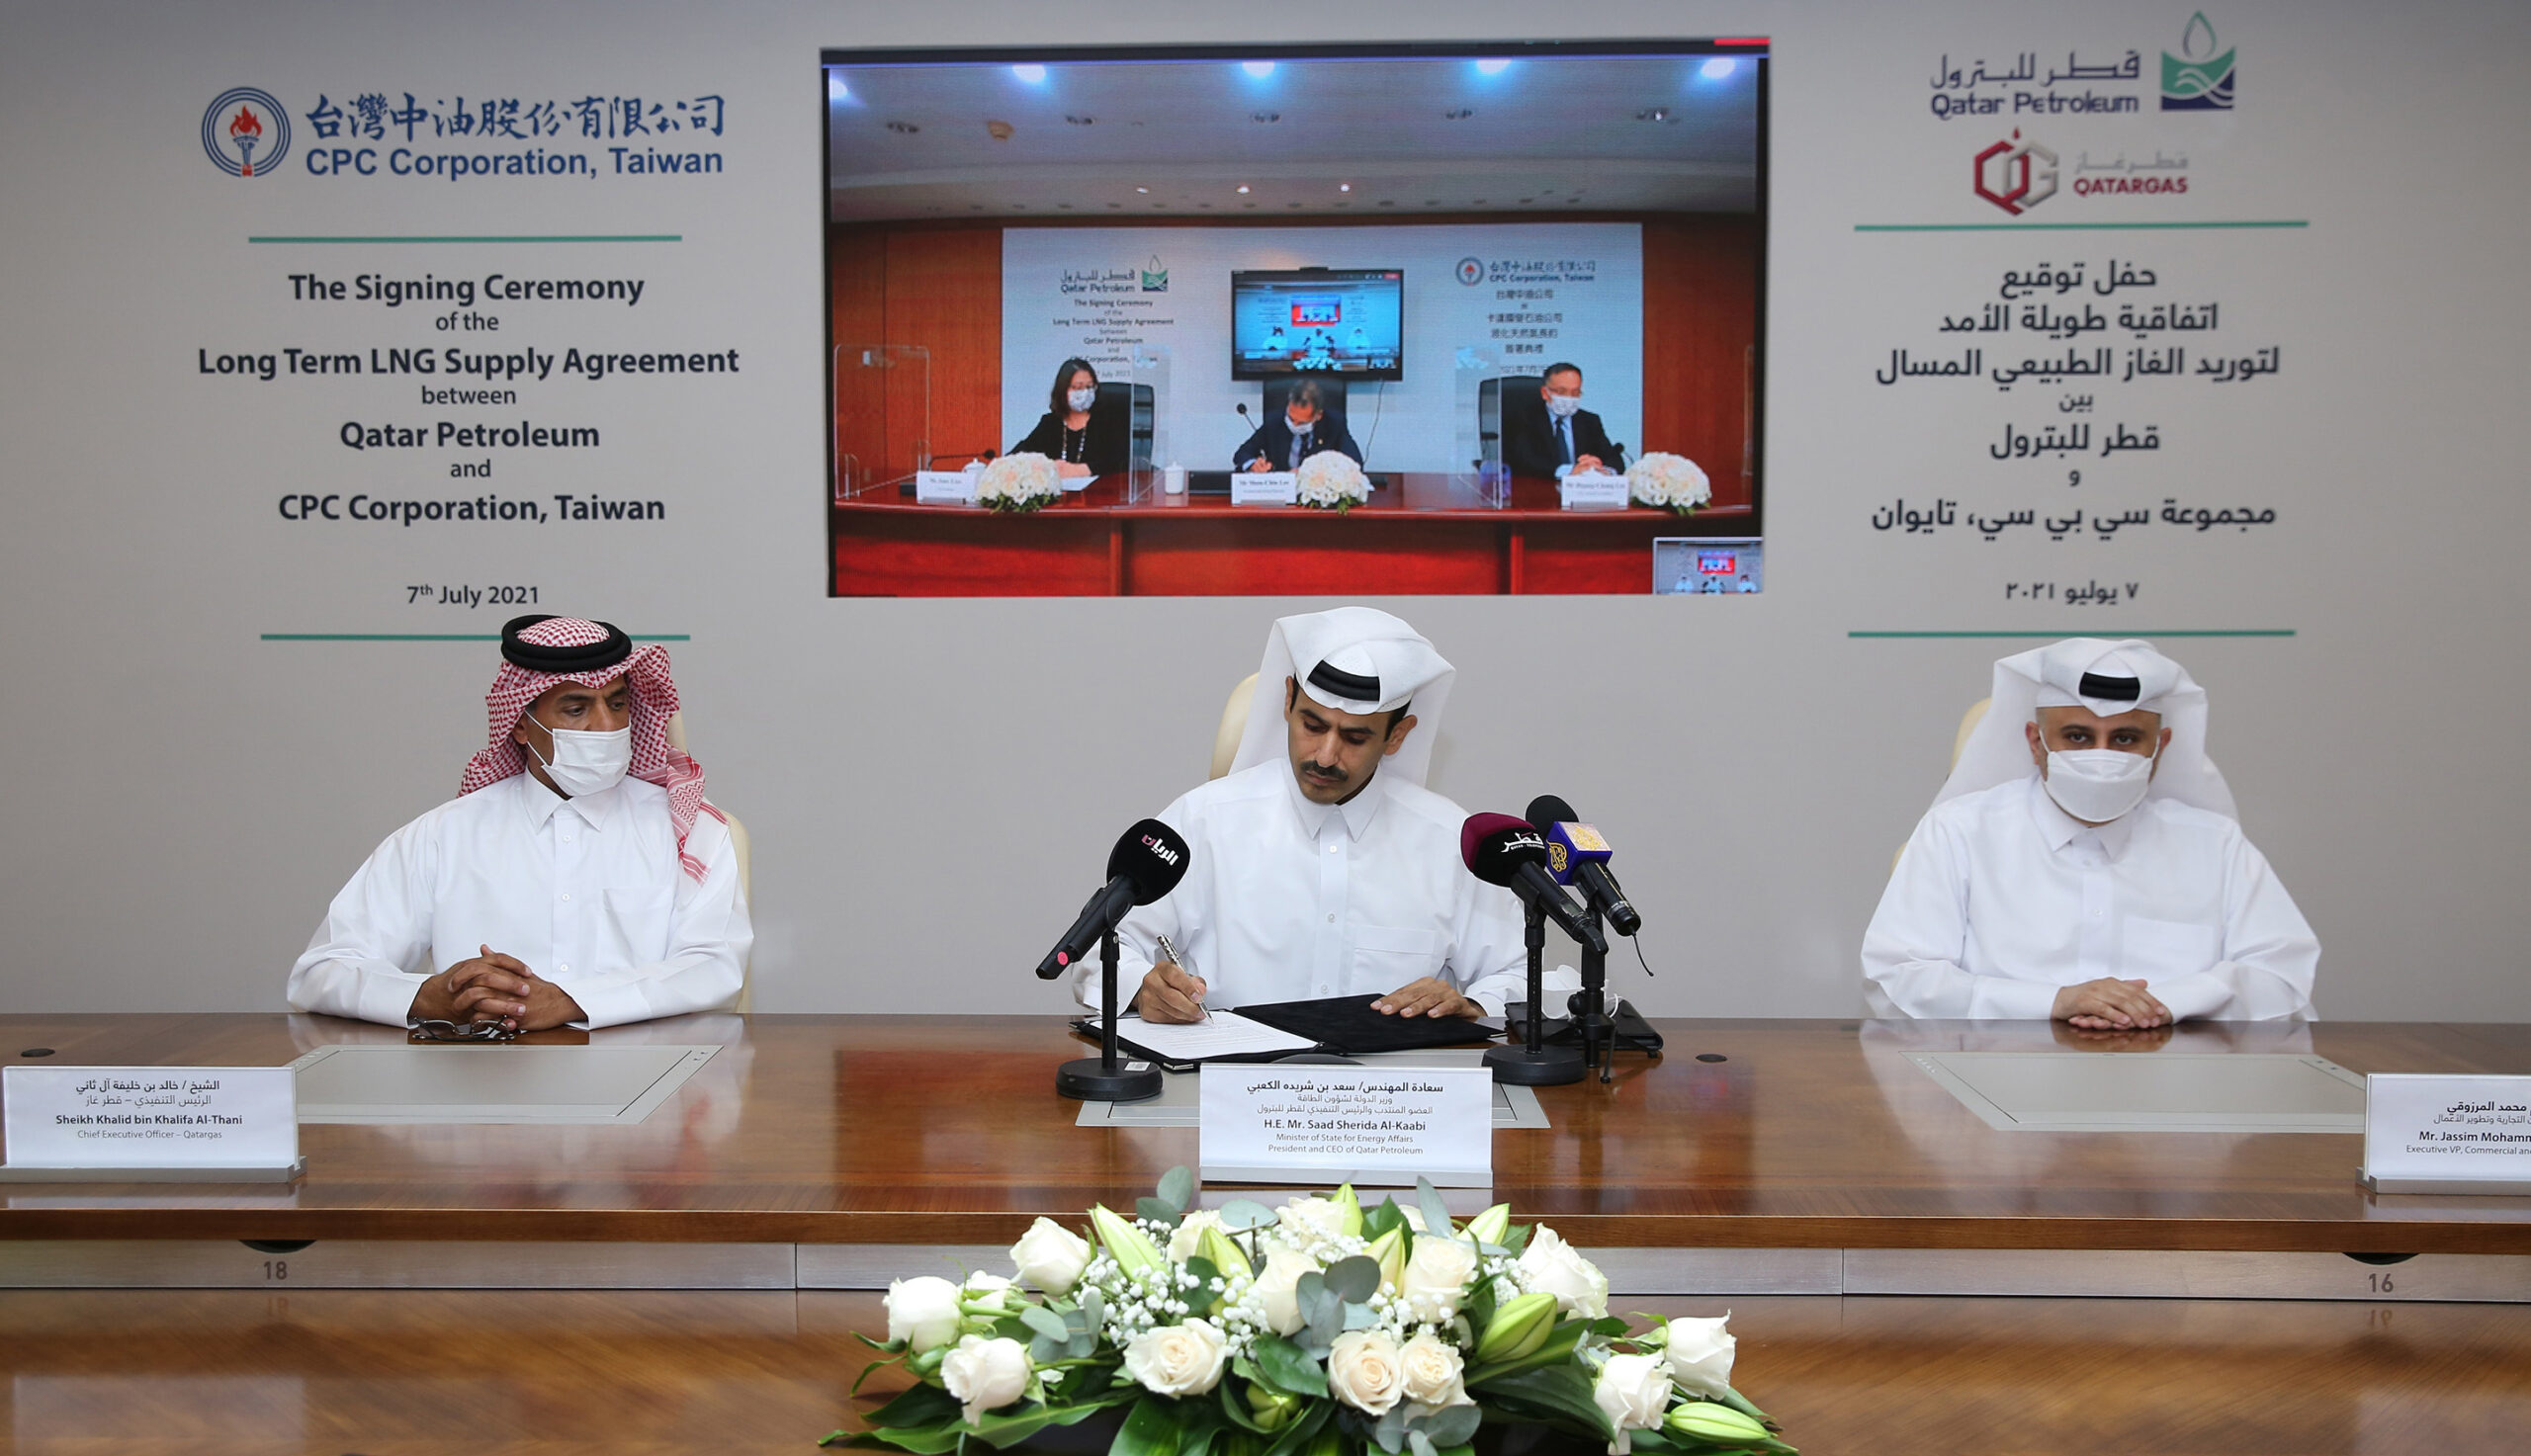 Qatar Petroleum-CPC Corp. (Taiwan) Signs A 15-year SPA To Supply 1.25 MTPA of LNG